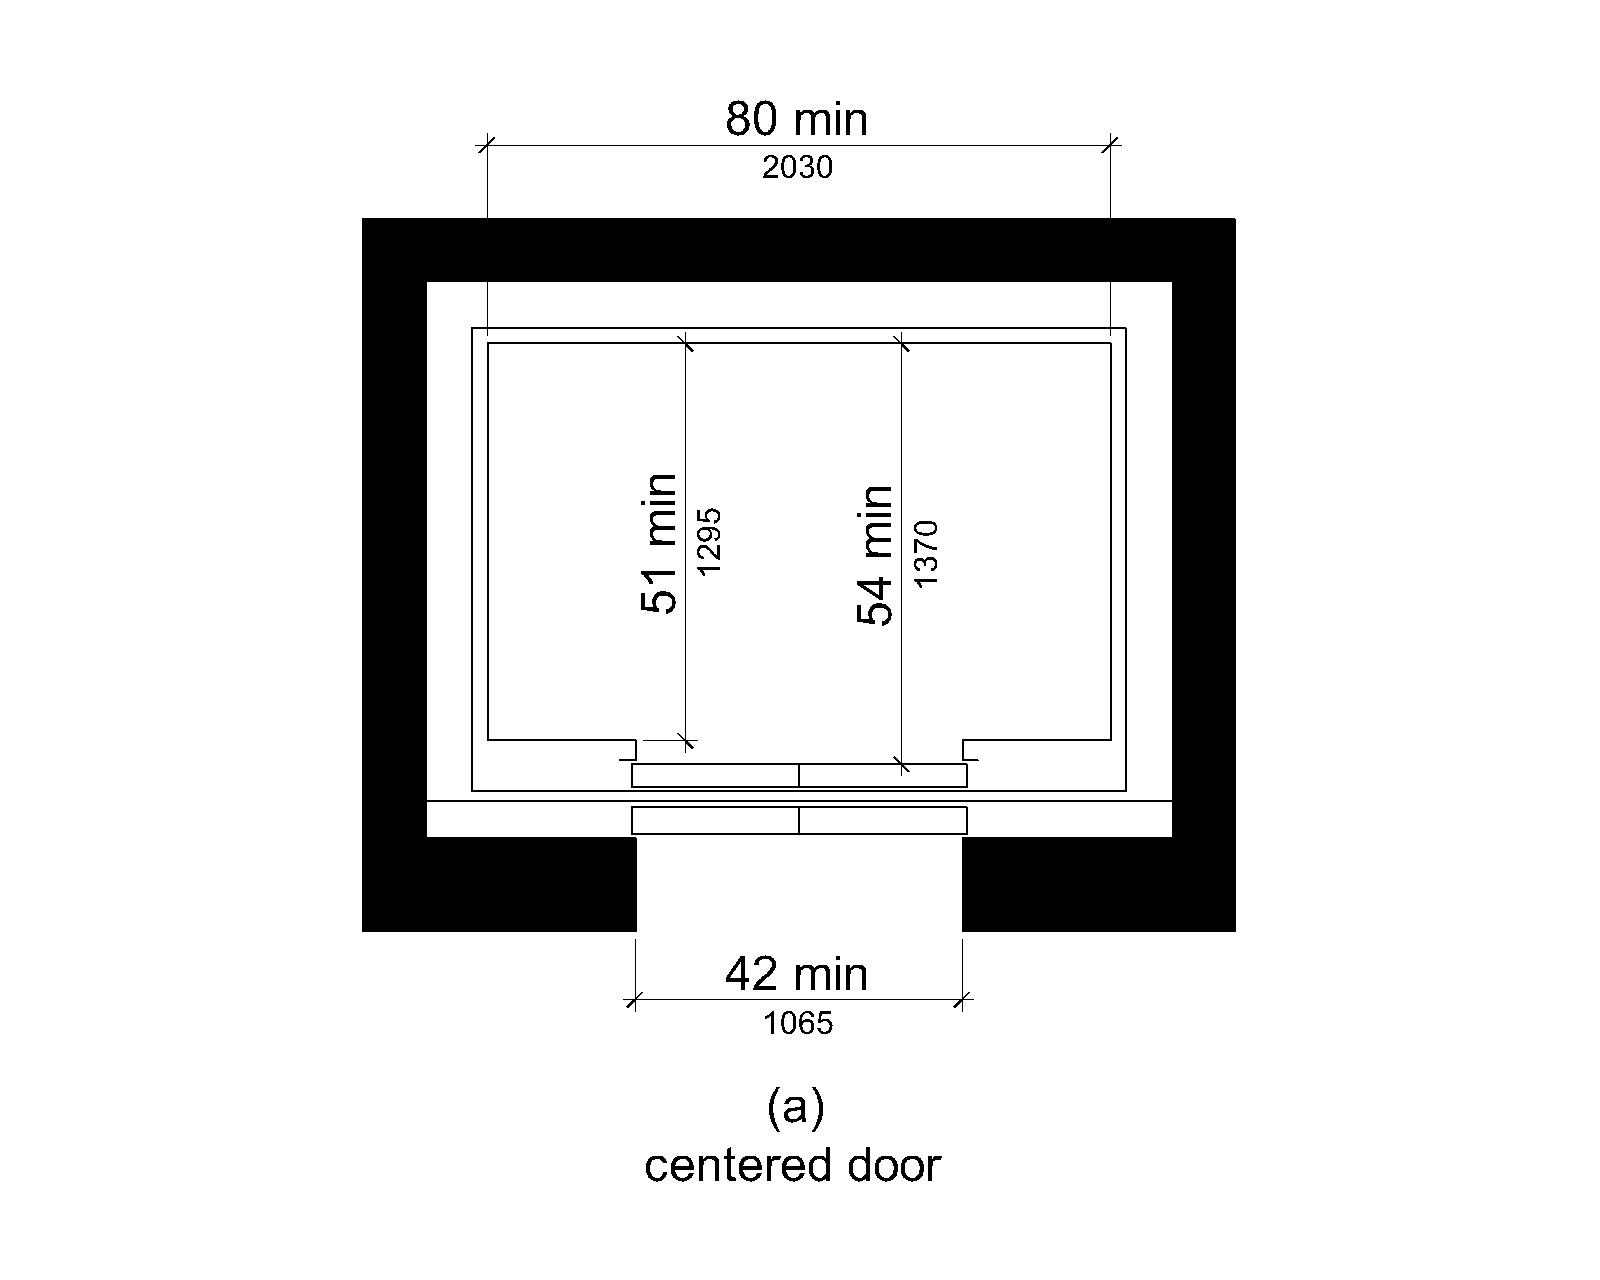 Figure (a) shows an elevator car with a centered door. The door clear width is 42 inches (1065 mm) minimum and the car width measured side to side is 80 inches (2030 mm) minimum. The car depth is 51 inches (1295 mm) minimum measured from the back wall to the front return, and 54 inches (1370 mm) minimum measured from the back wall to the inside face of the door.